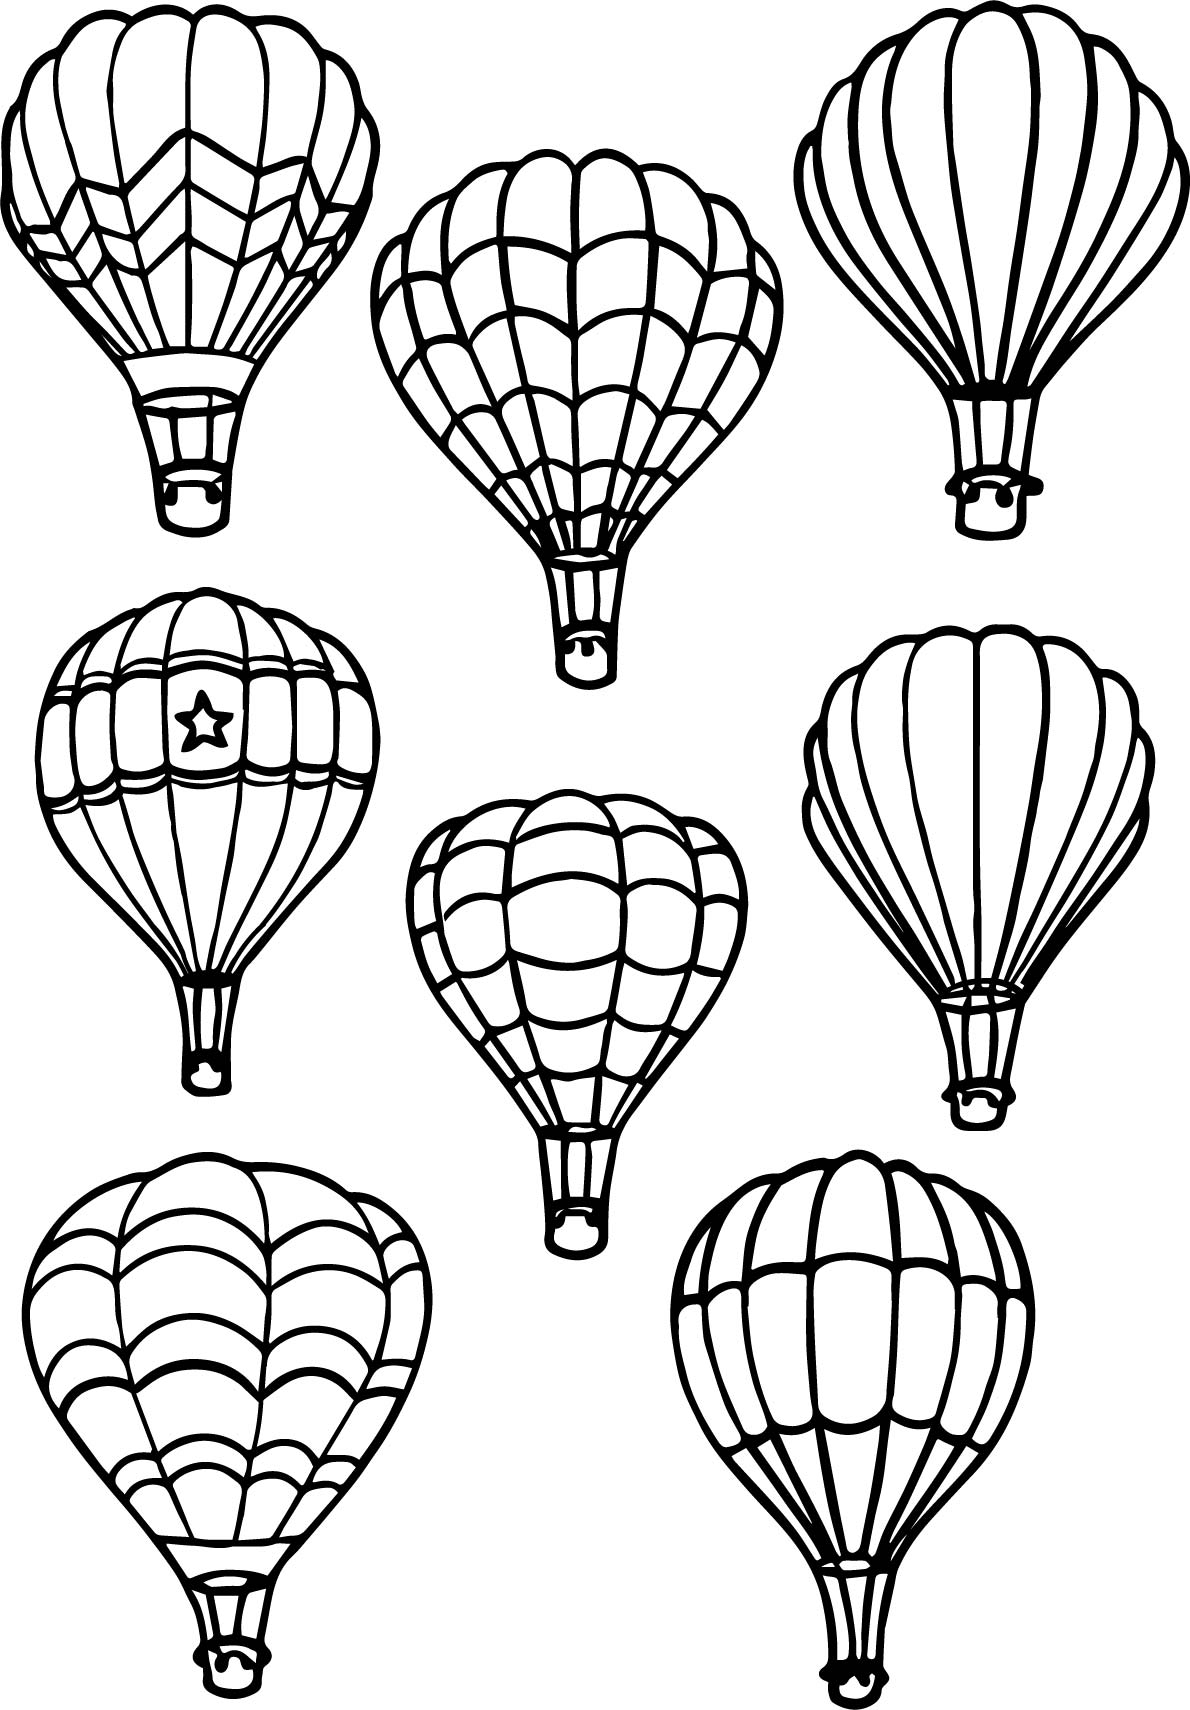 Free Hot Air Balloon Coloring Pages At Getdrawings Free Download